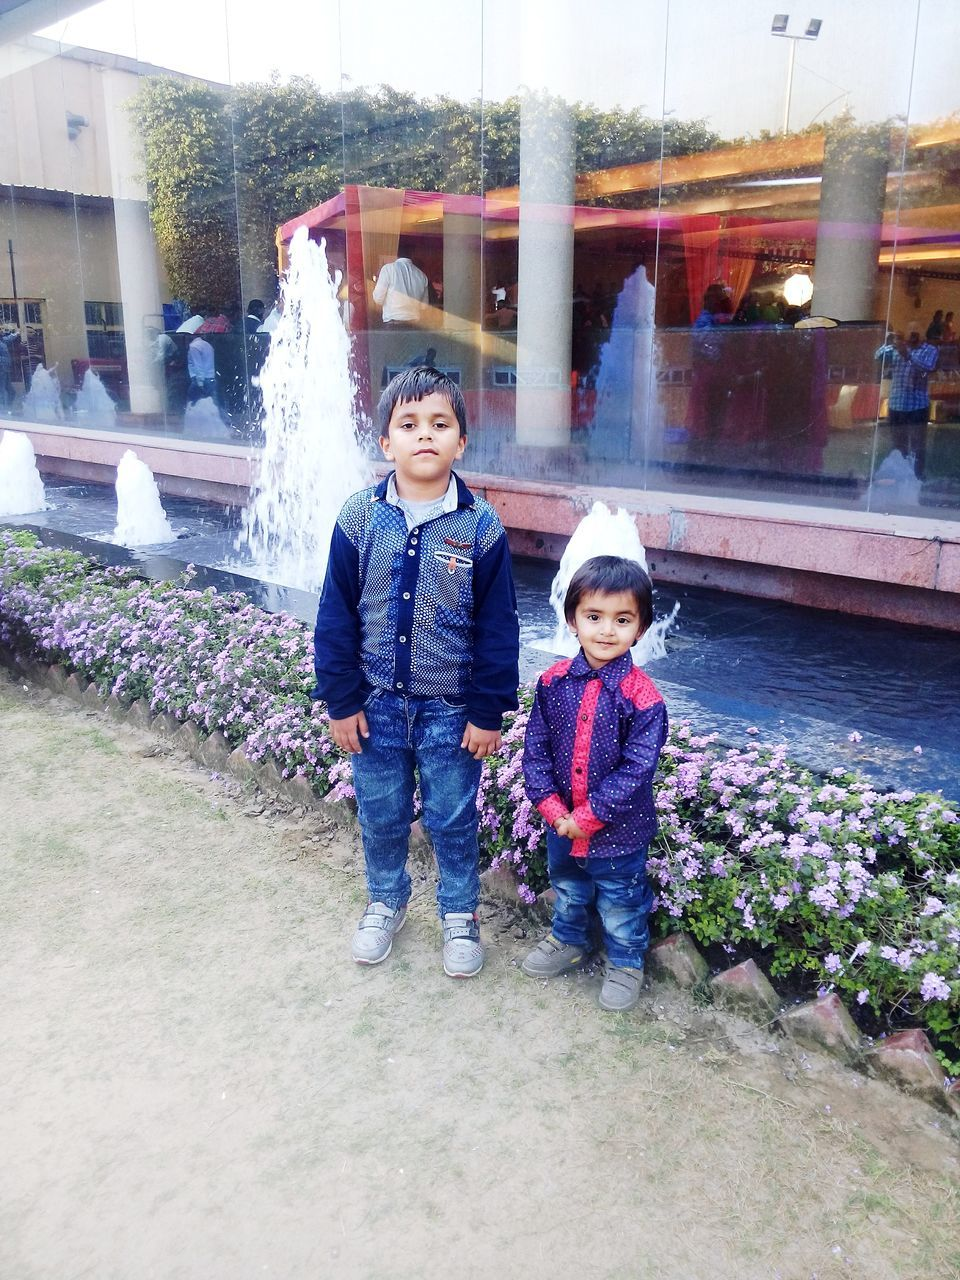 childhood, boys, looking at camera, outdoors, full length, real people, son, day, front view, happiness, warm clothing, smiling, togetherness, lifestyles, leisure activity, portrait, elementary age, family with one child, jacket, family, father, enjoyment, child, architecture, standing, building exterior, bonding, nature, young adult, people, adult